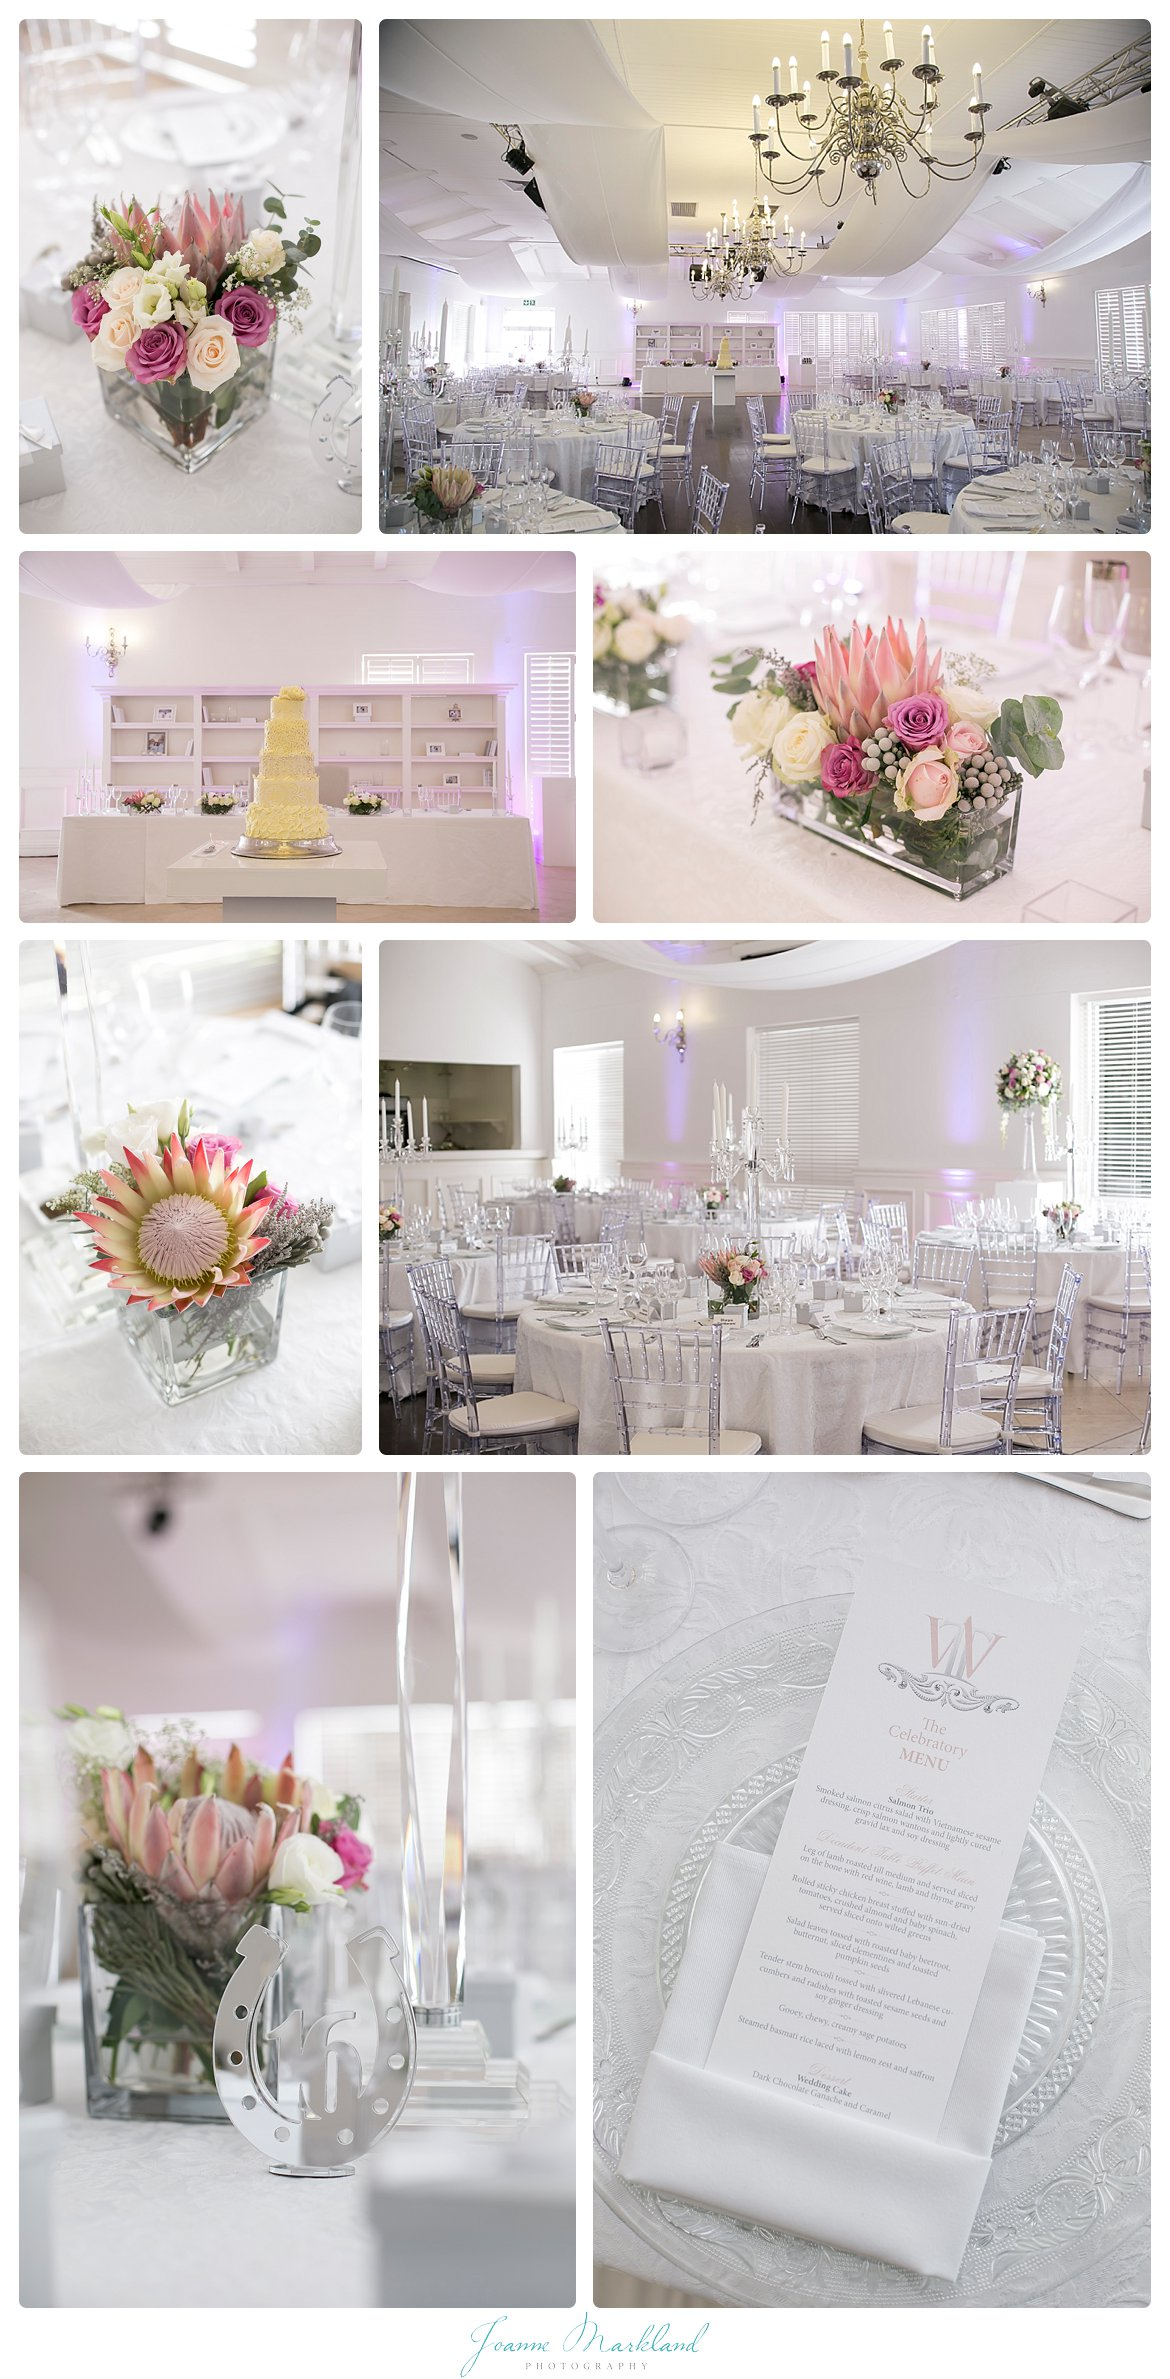 Val_de_vie_wedding_joanne_markland_photography_paarl-003